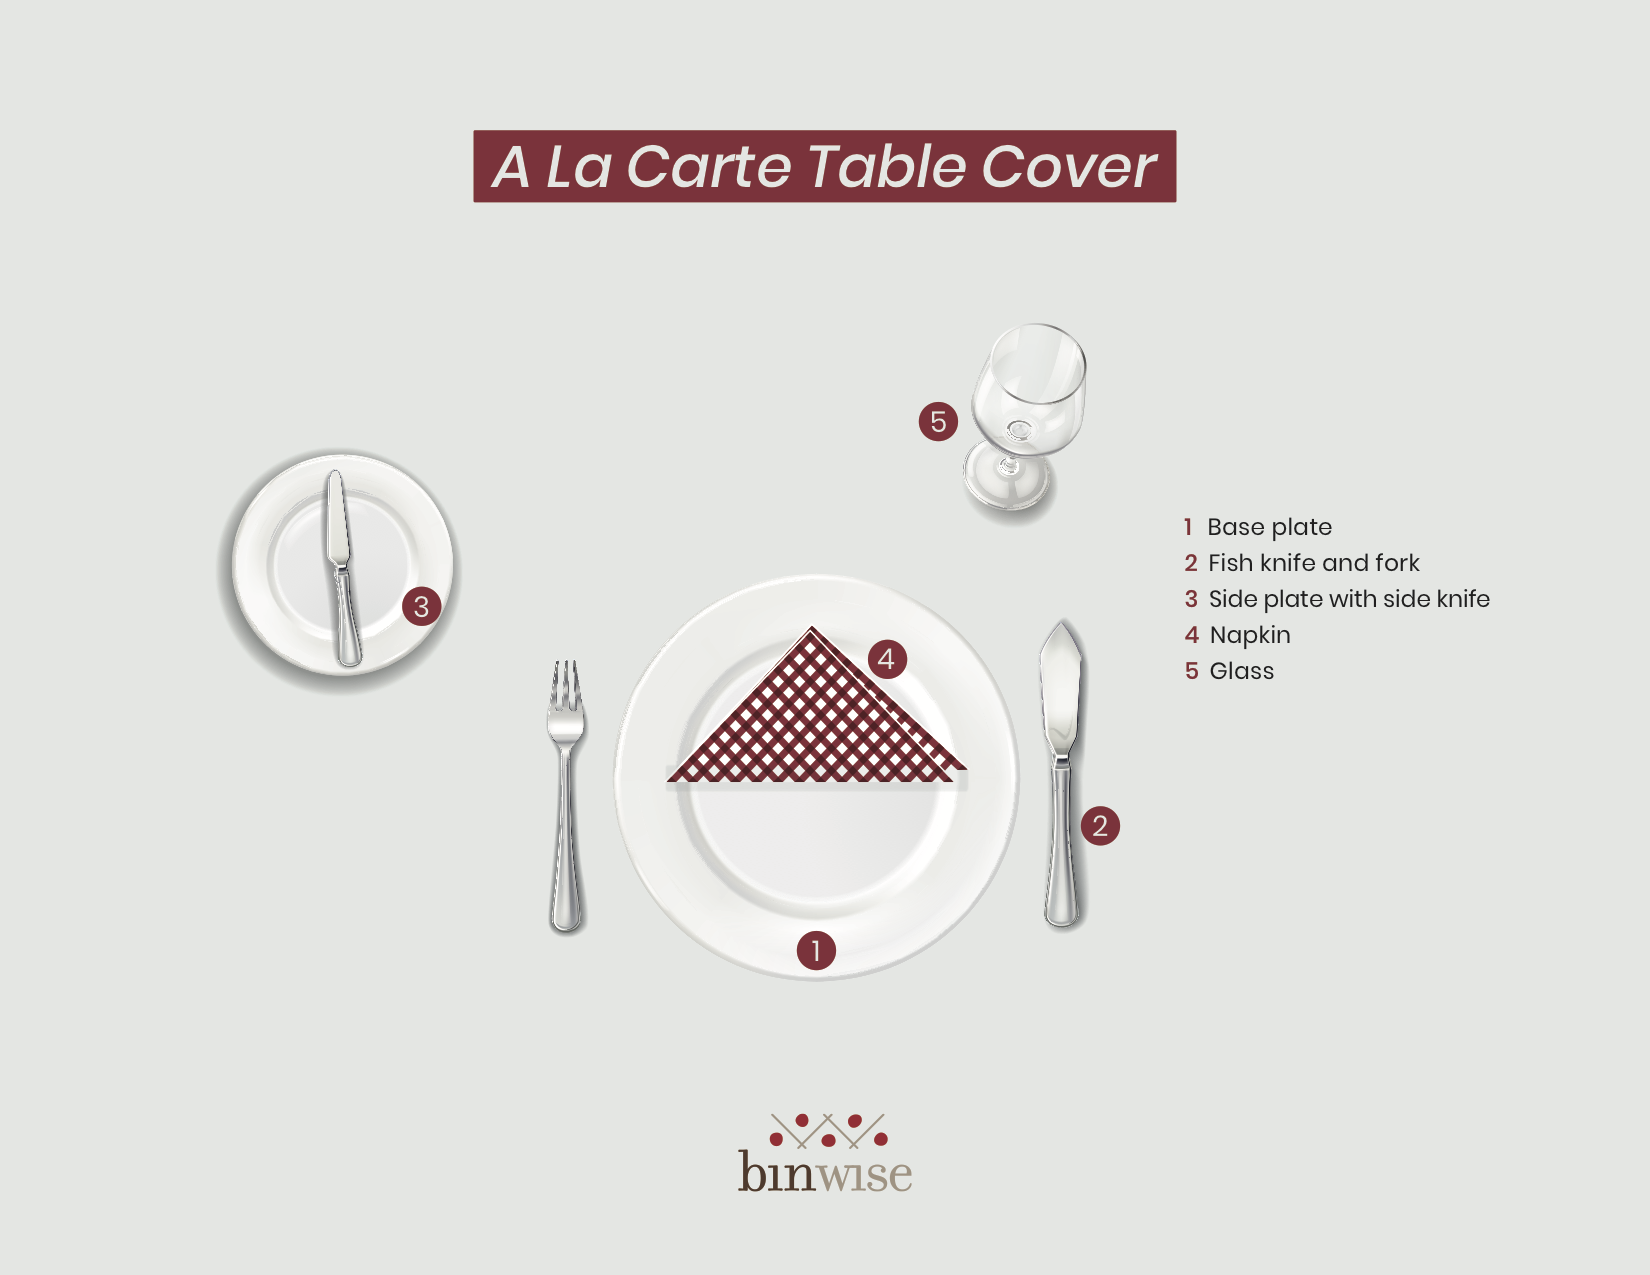 a la carte table cover